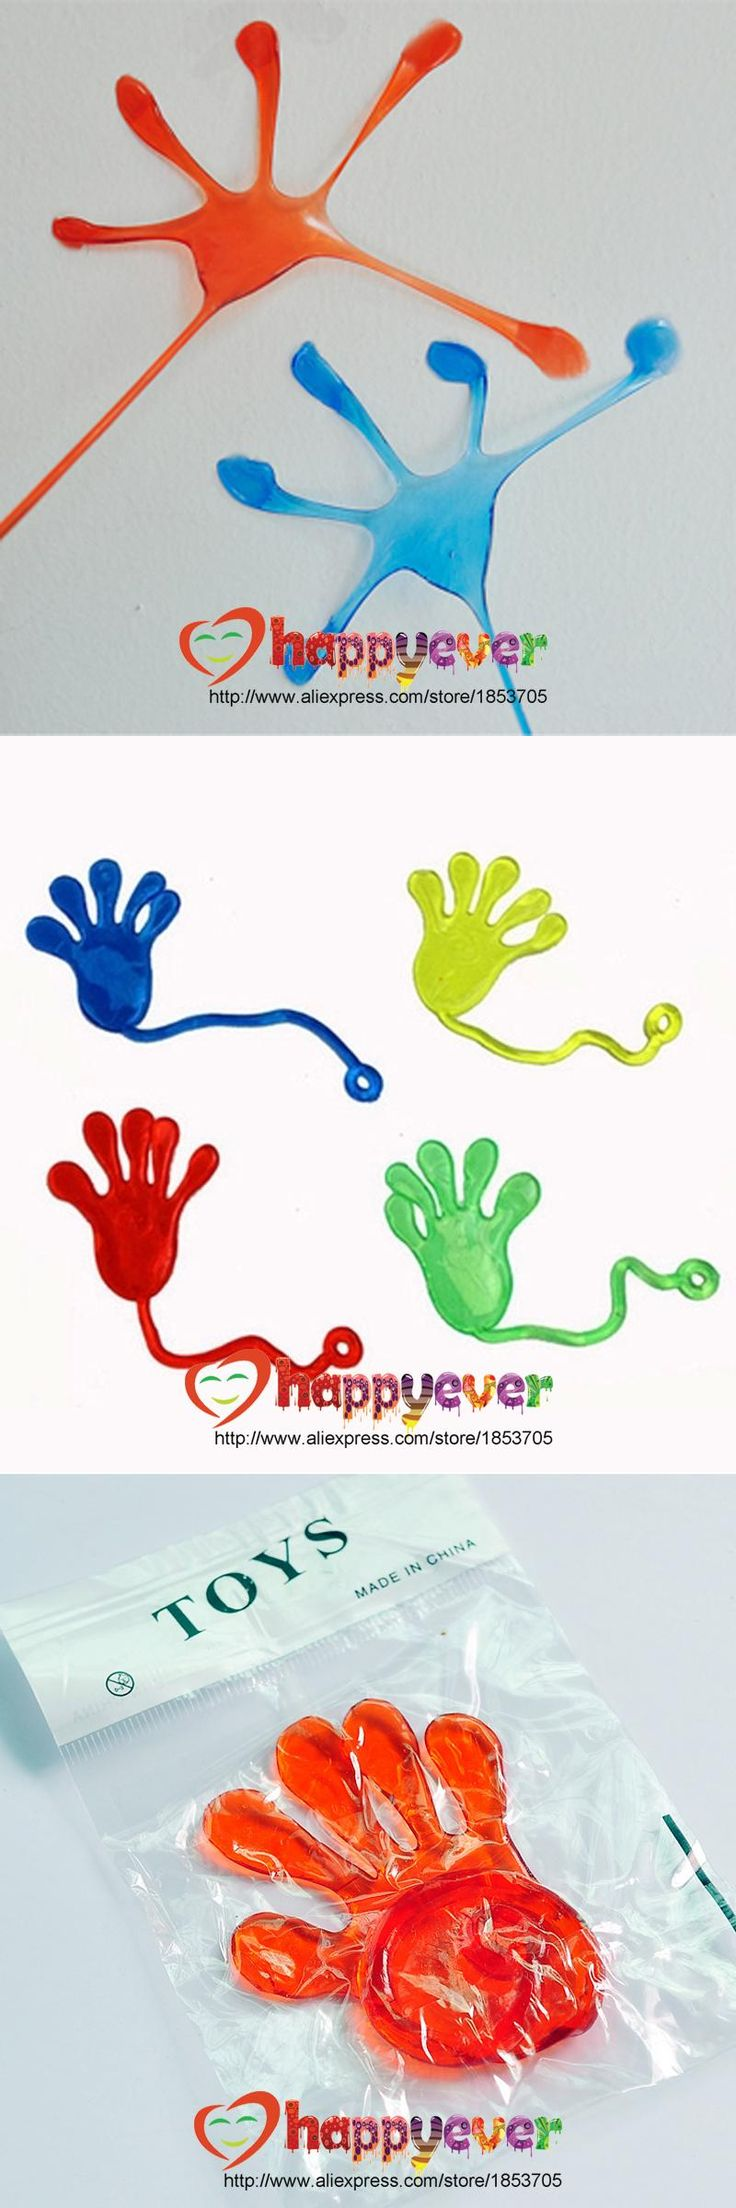 Felizever 12 Pcs Sticky Hands and Feet Kids Birthday Party Favors Supplies Carnival Prize Pinata Fillers Kids Toy Gift